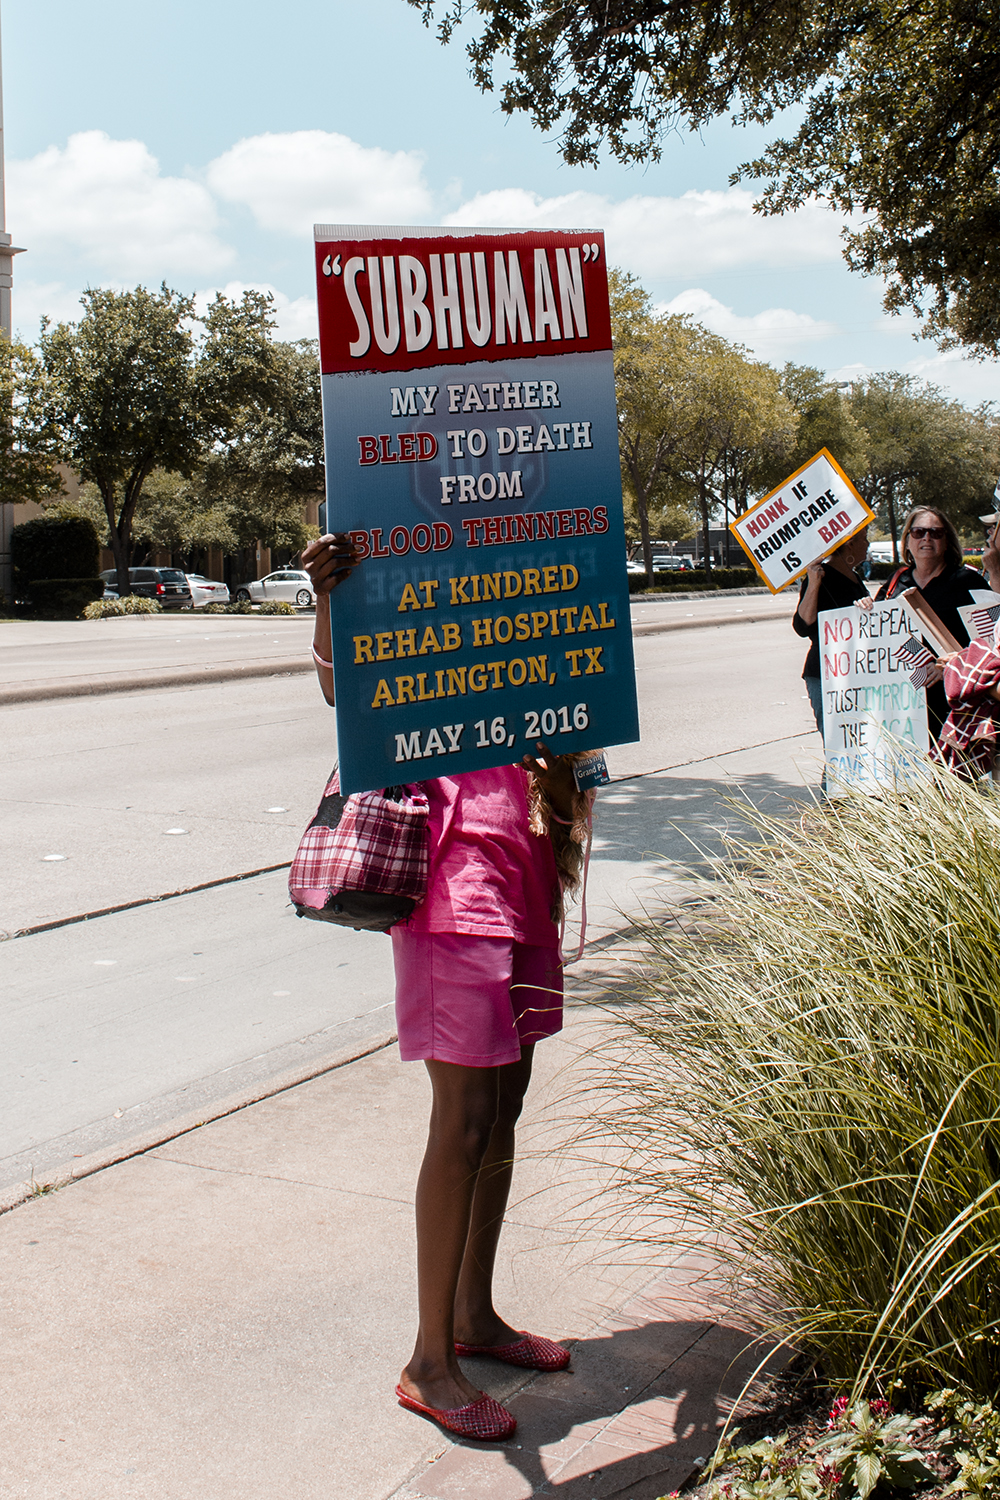 Rally to Save Our Healthcare/Sen Cornyn's Office 6/28/17 © Holly D. Gray